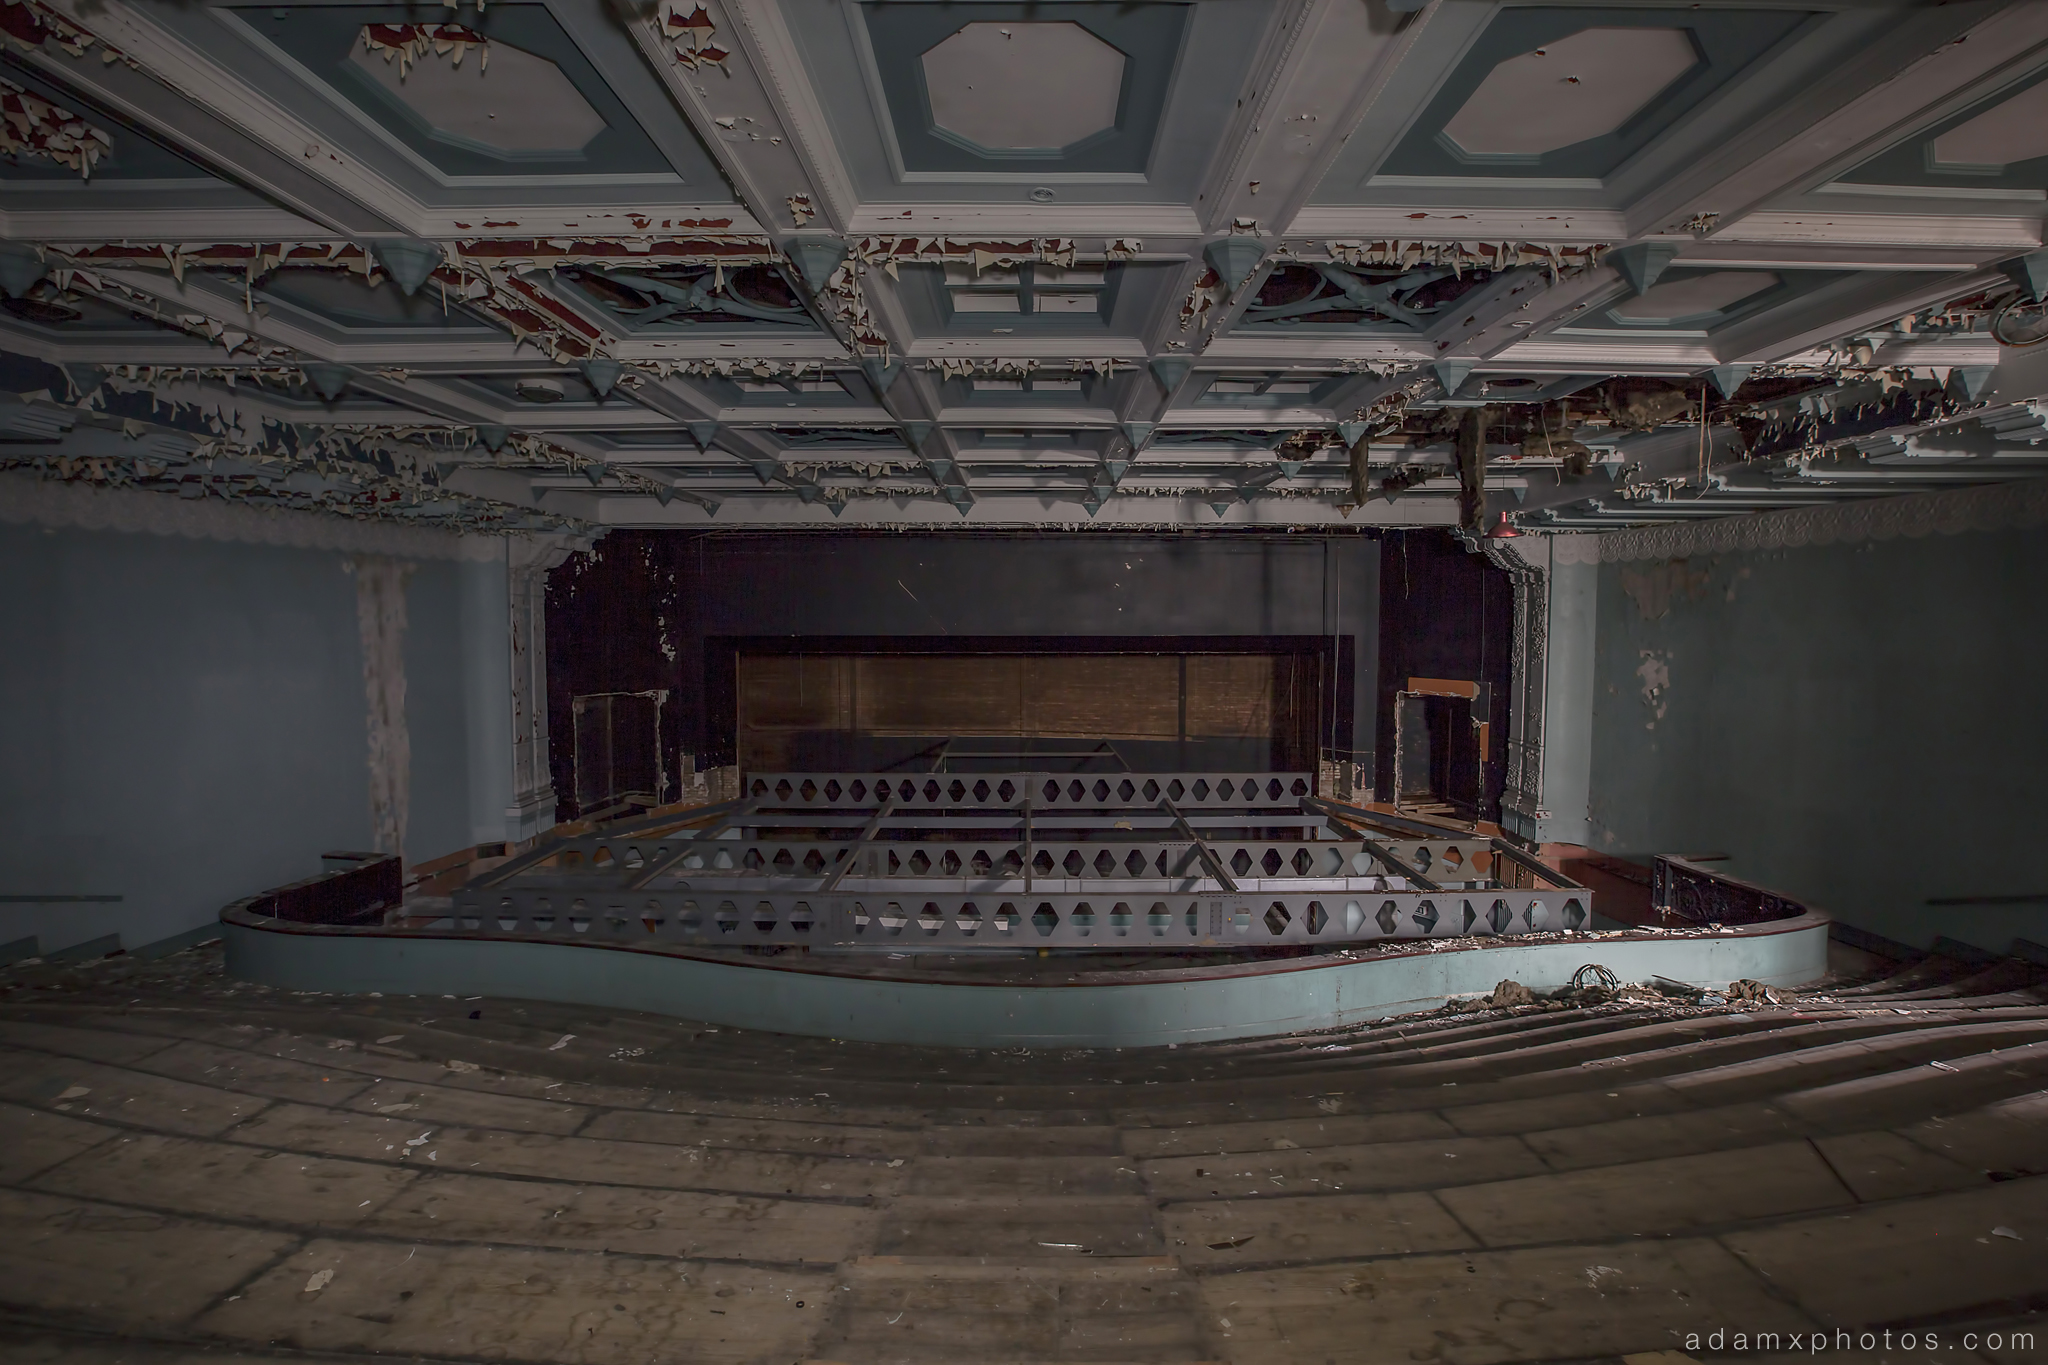 Colchester Odeon Cinema stage auditorium main hall Urbex Adam X Urban Exploration photo photos report decay detail UE abandoned derelict unused empty disused decay decayed decaying grimy grime